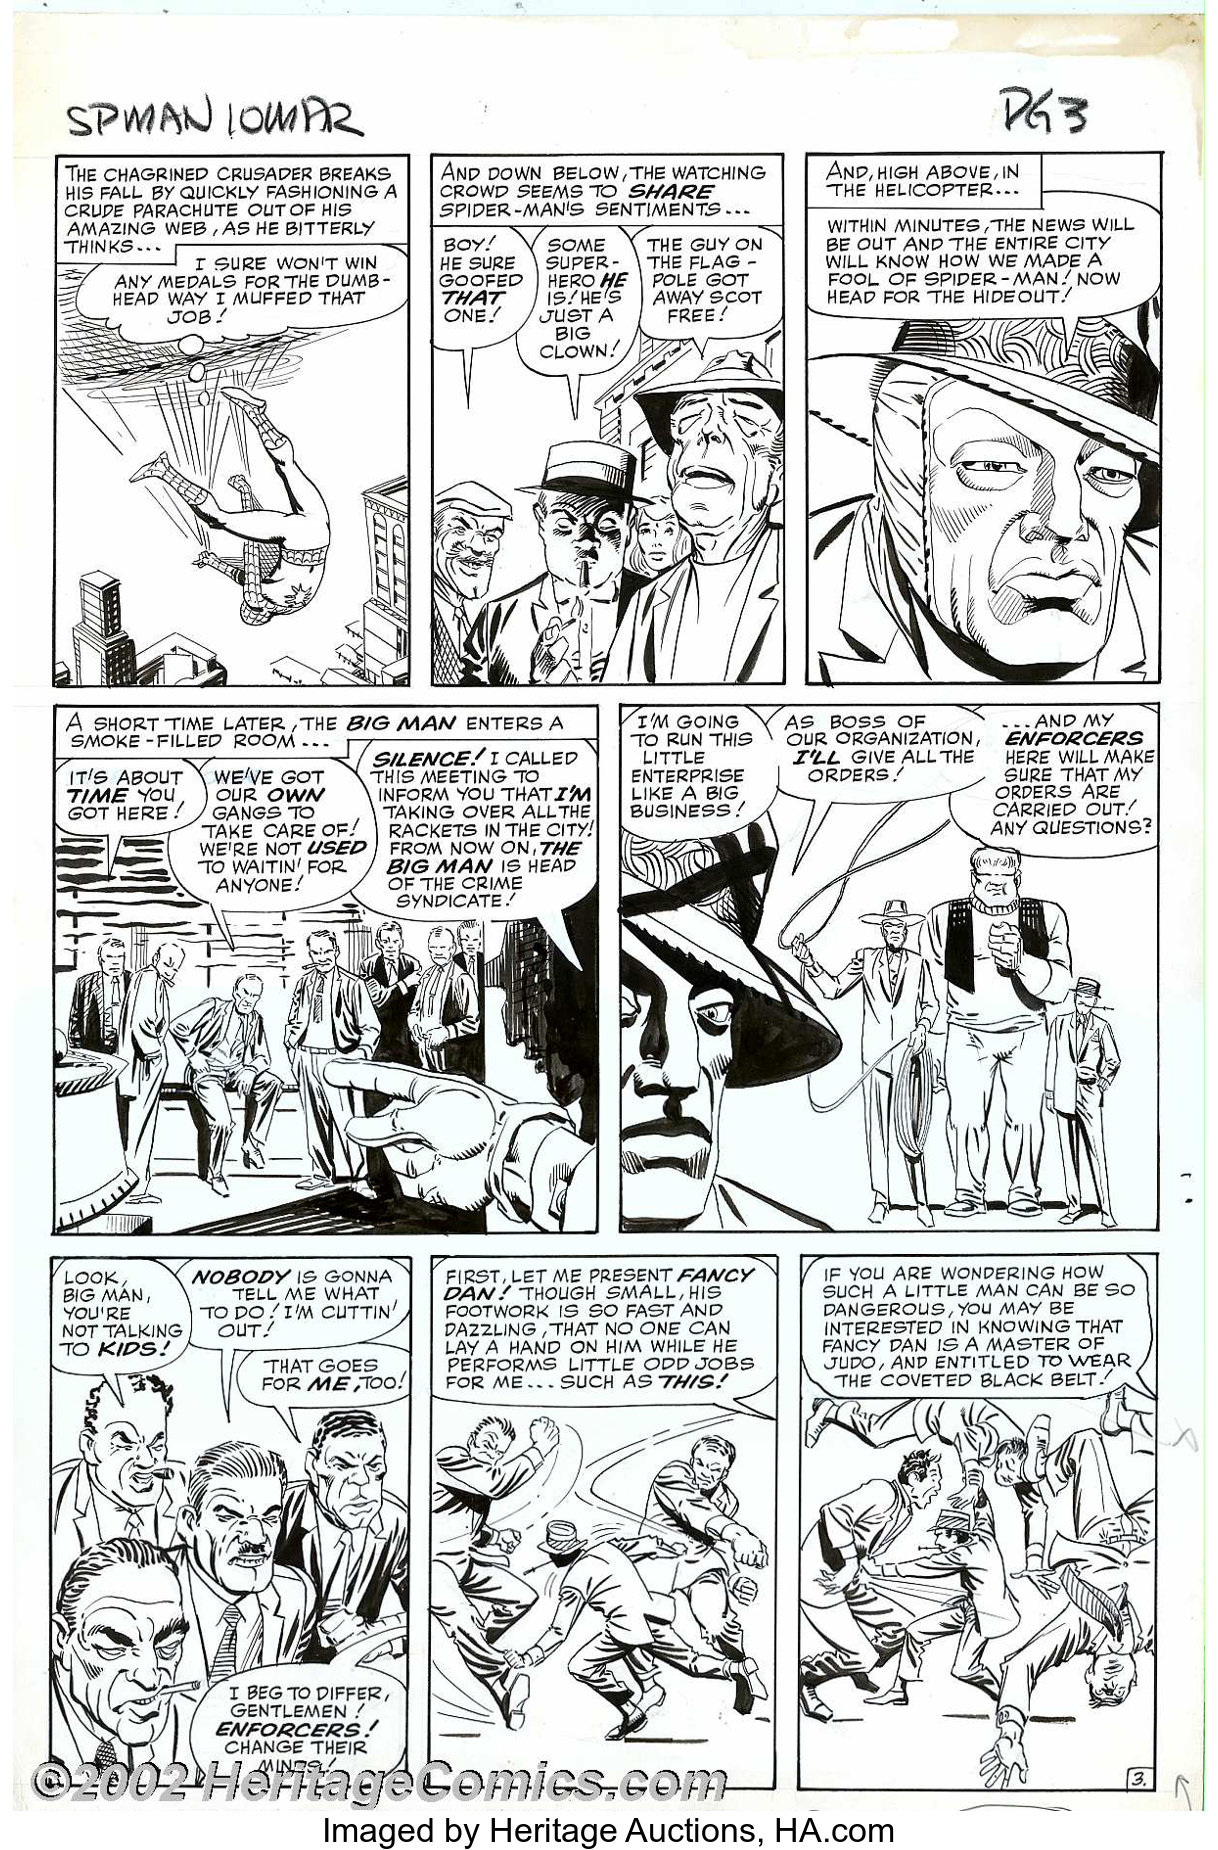 Steve Ditko - Original Art Panel Page for The Amazing Spider-Man